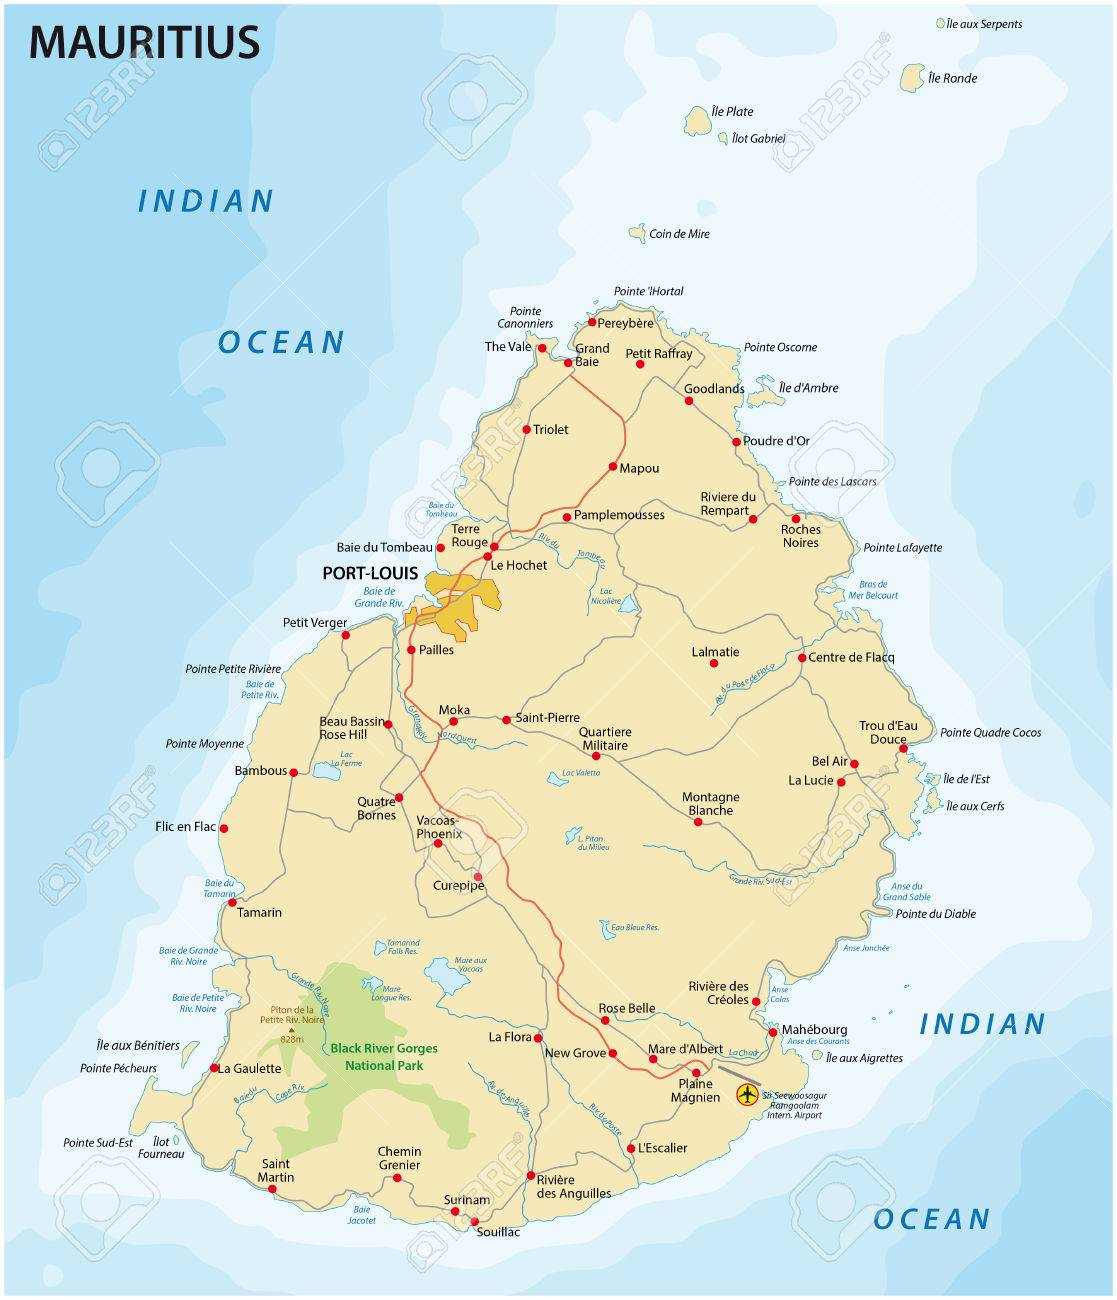 Mauritius maps your must have island guide administrative road map of the state iceland mauritius in the indian ocean mauritius map gumiabroncs Gallery